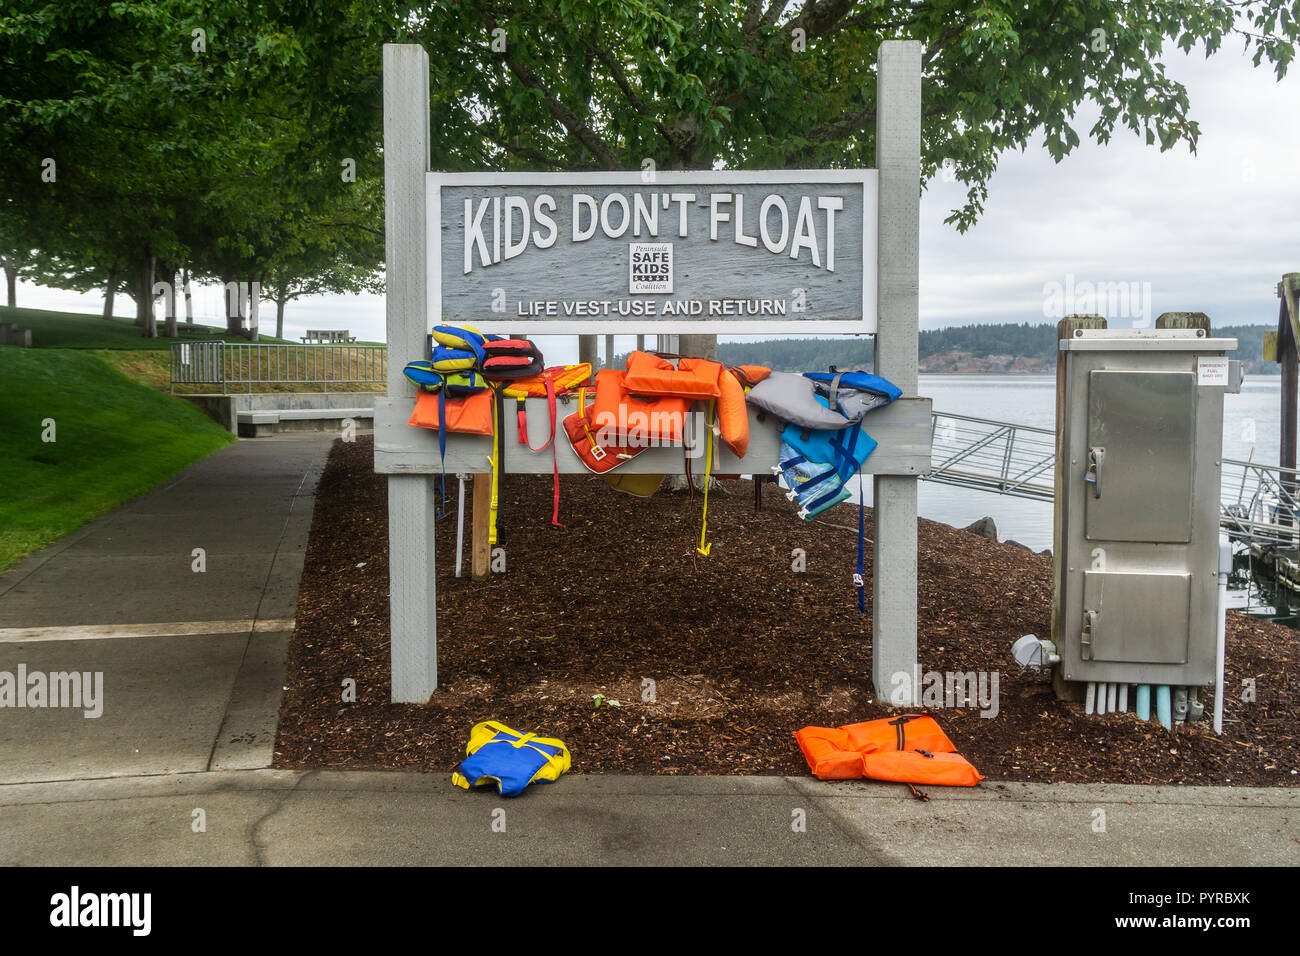 Life vest use and return self service at Sequim marina with the headline Kids don't float, Washington state, USA. Stock Photo